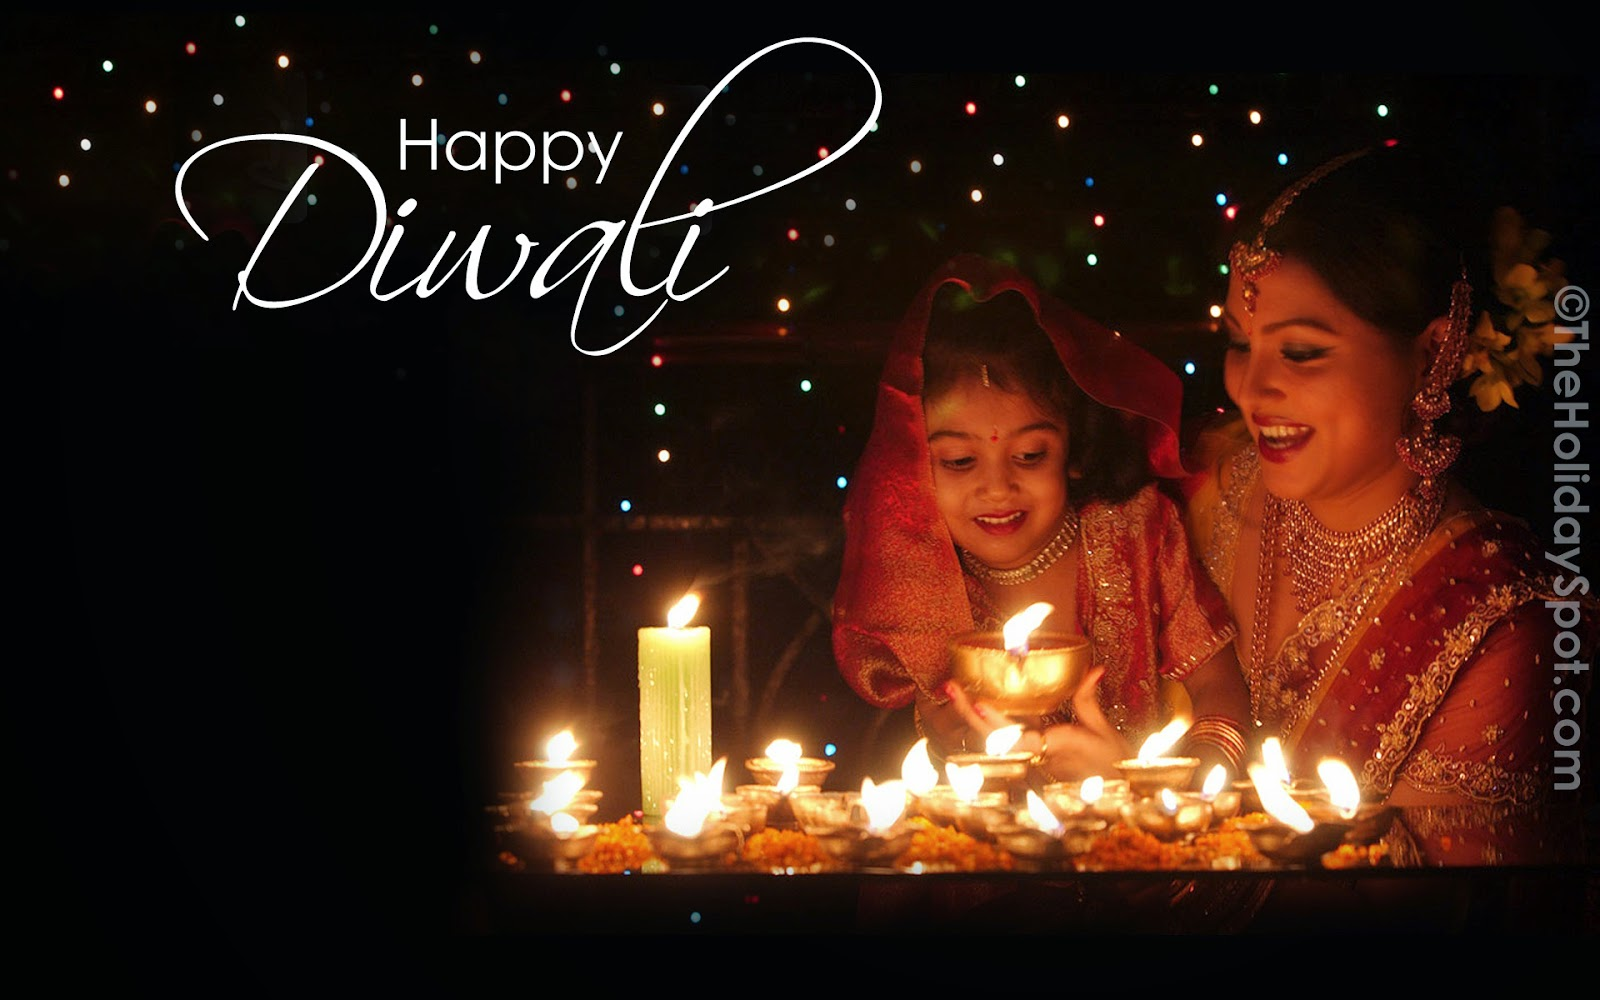 Diwali celebration Image 2017